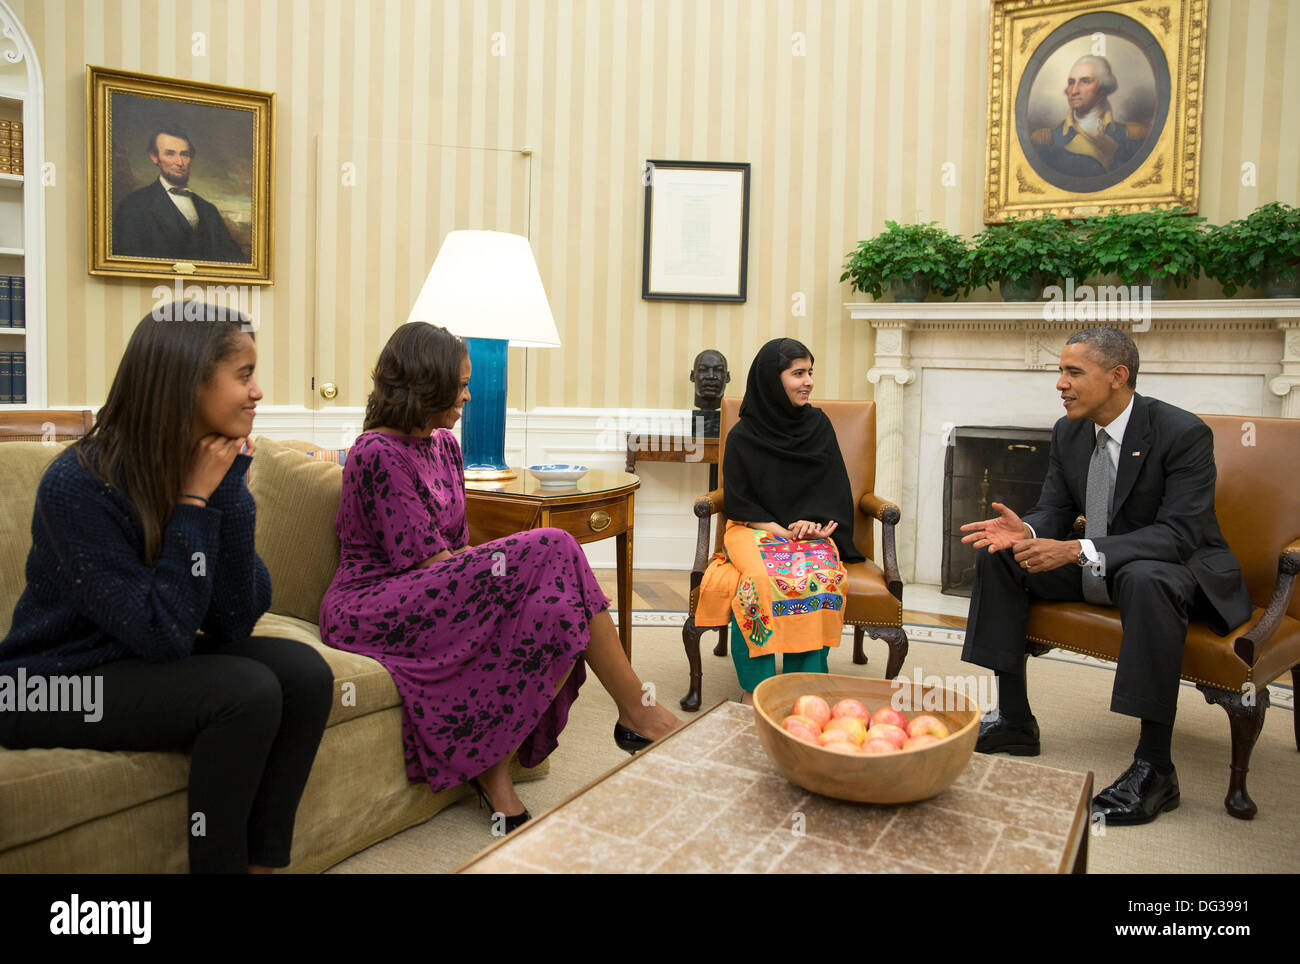 US President Barack Obama, First Lady Michelle Obama, and their daughter Malia meet with Malala Yousafzai, the young Pakistani schoolgirl who was shot in the head by the Taliban a year ago in the Oval Office of the White House Oct. 11, 2013 in Washington, DC. - Stock Image